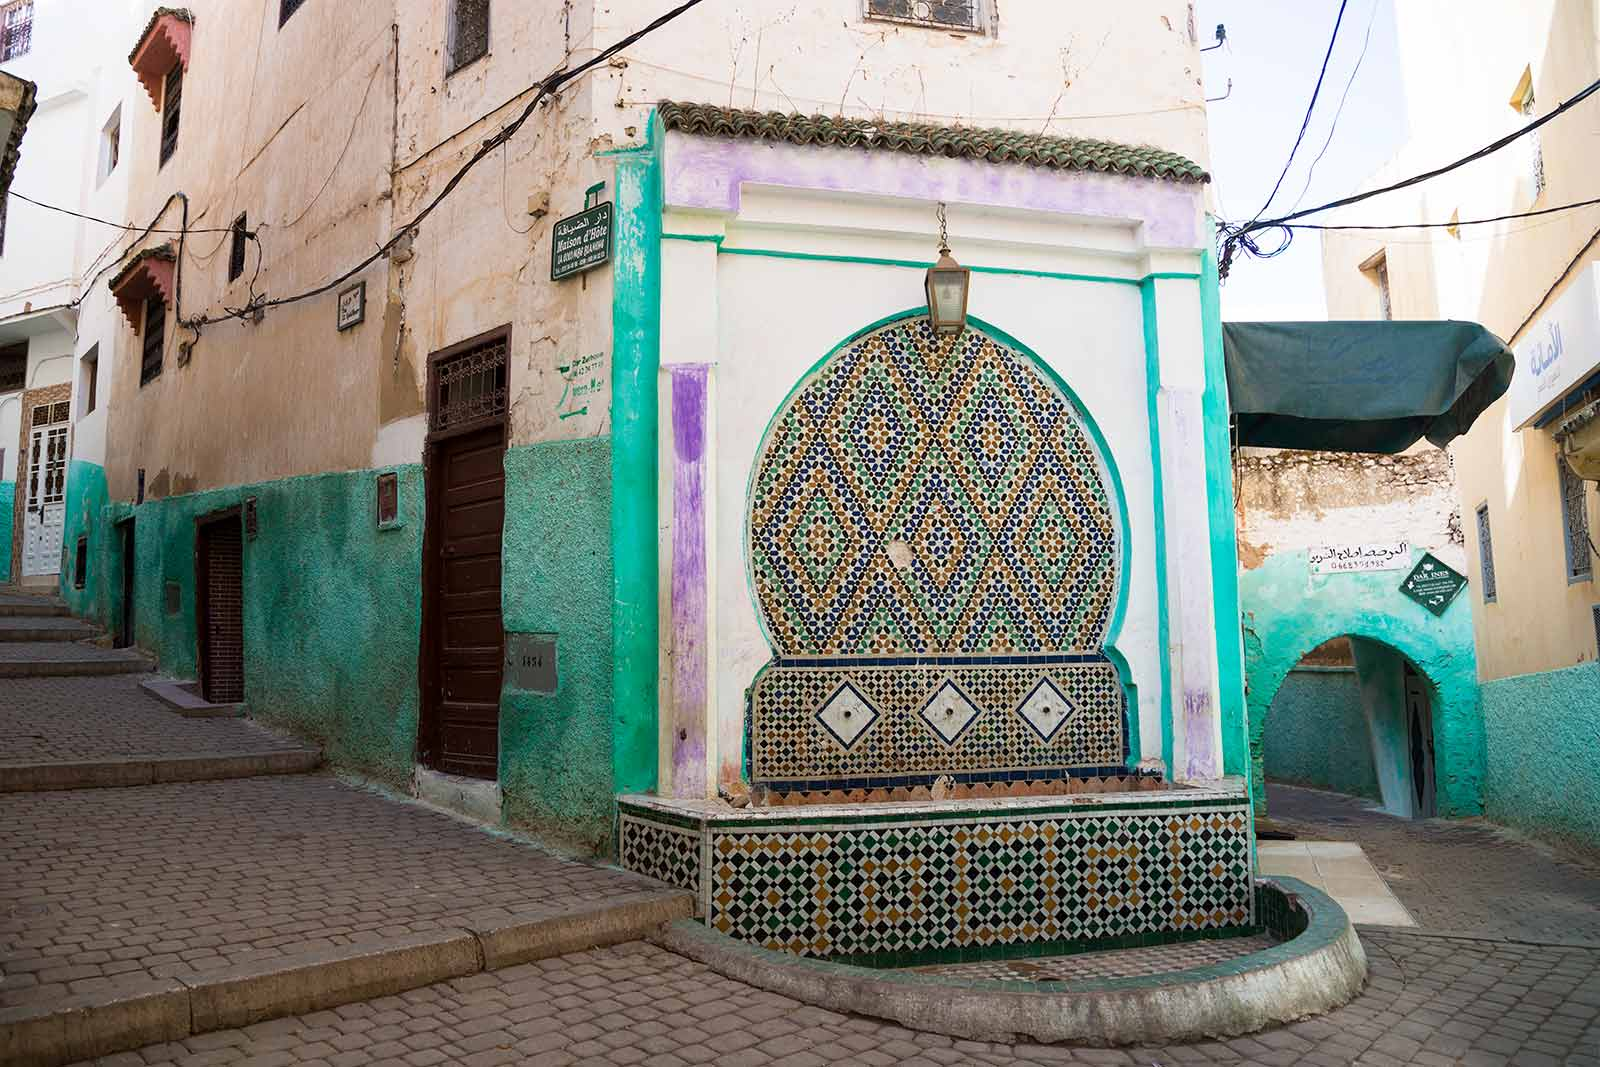 In the medina quarter of Moulay Idriss you will find many colourful streets that are the perfect photo spot.